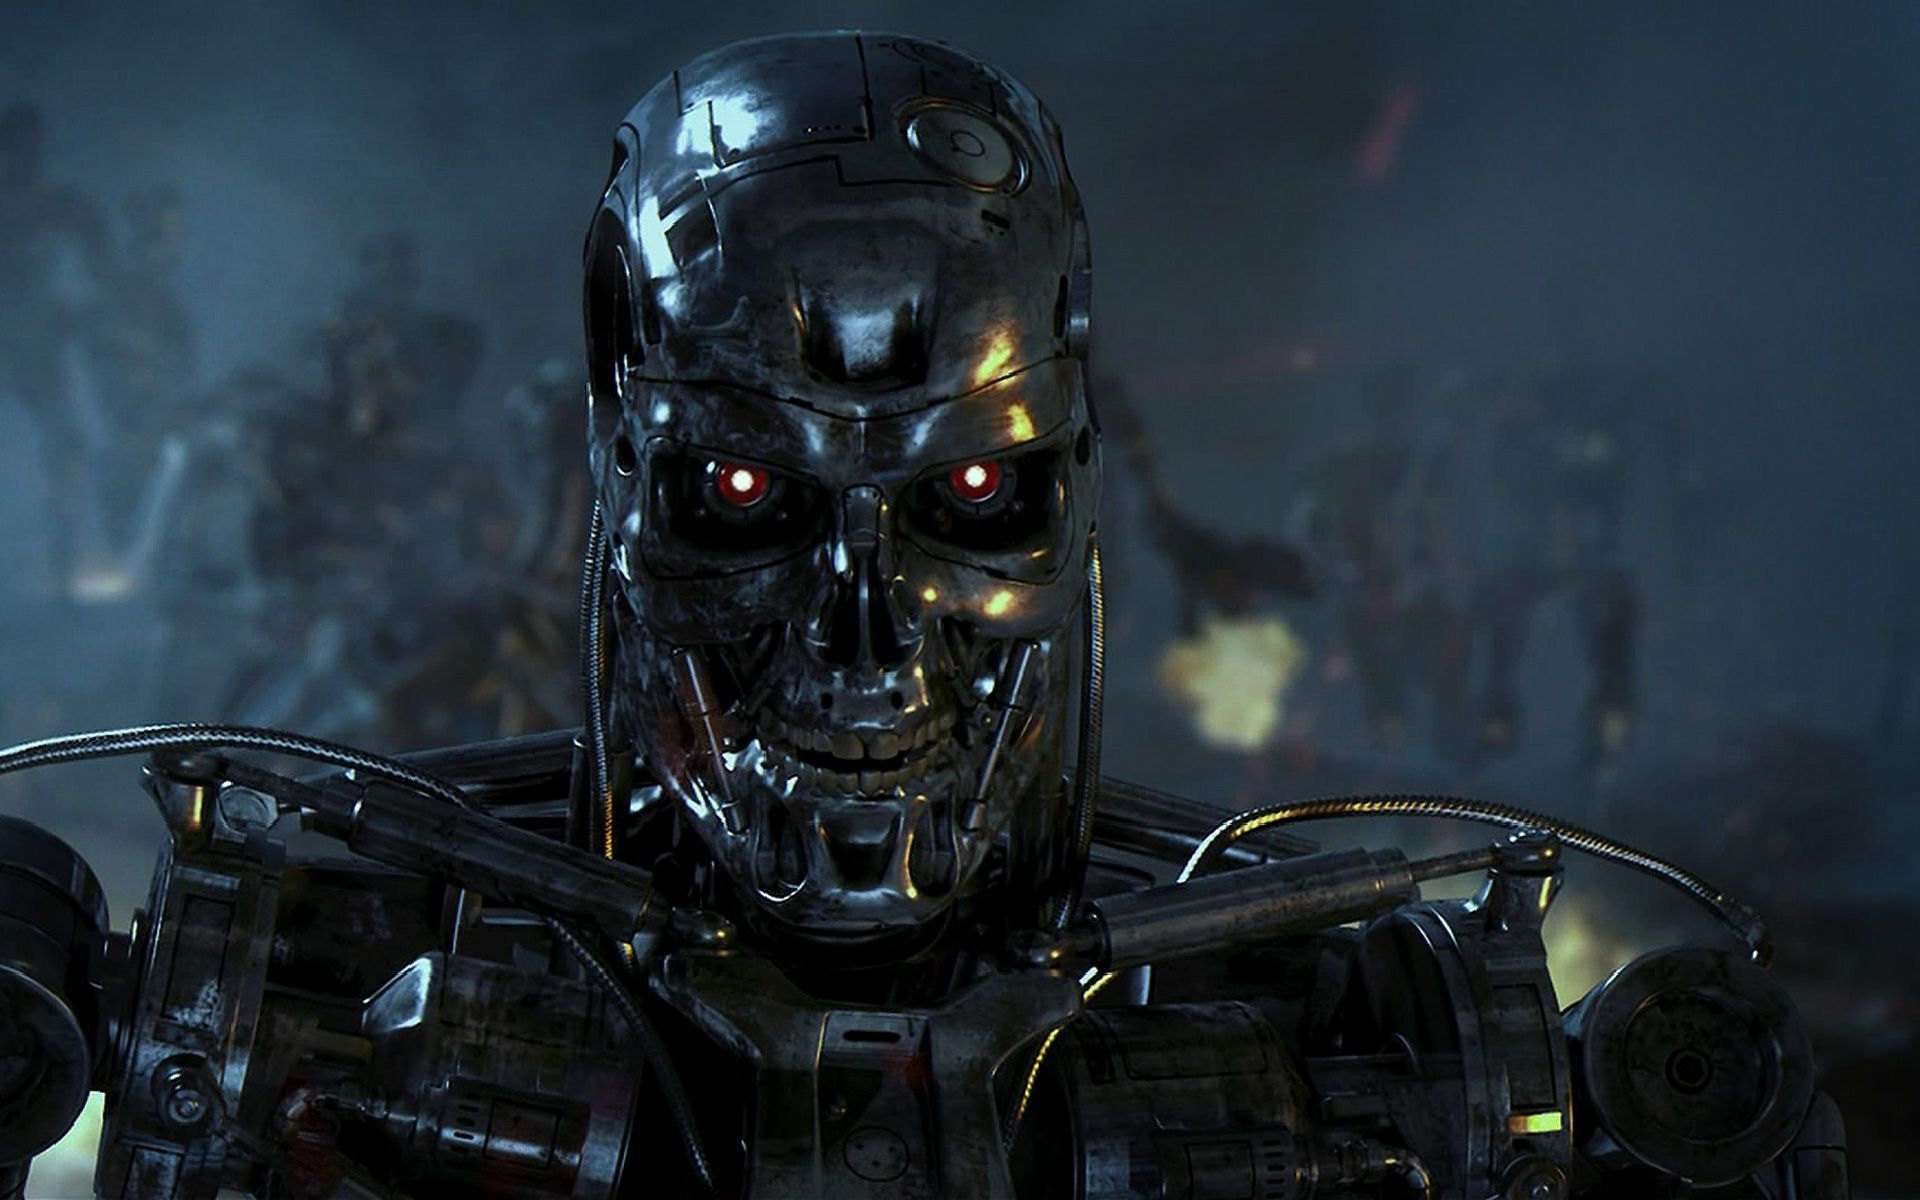 terminator-movie-hd-wallpaper-1920x1200-9254.jpg